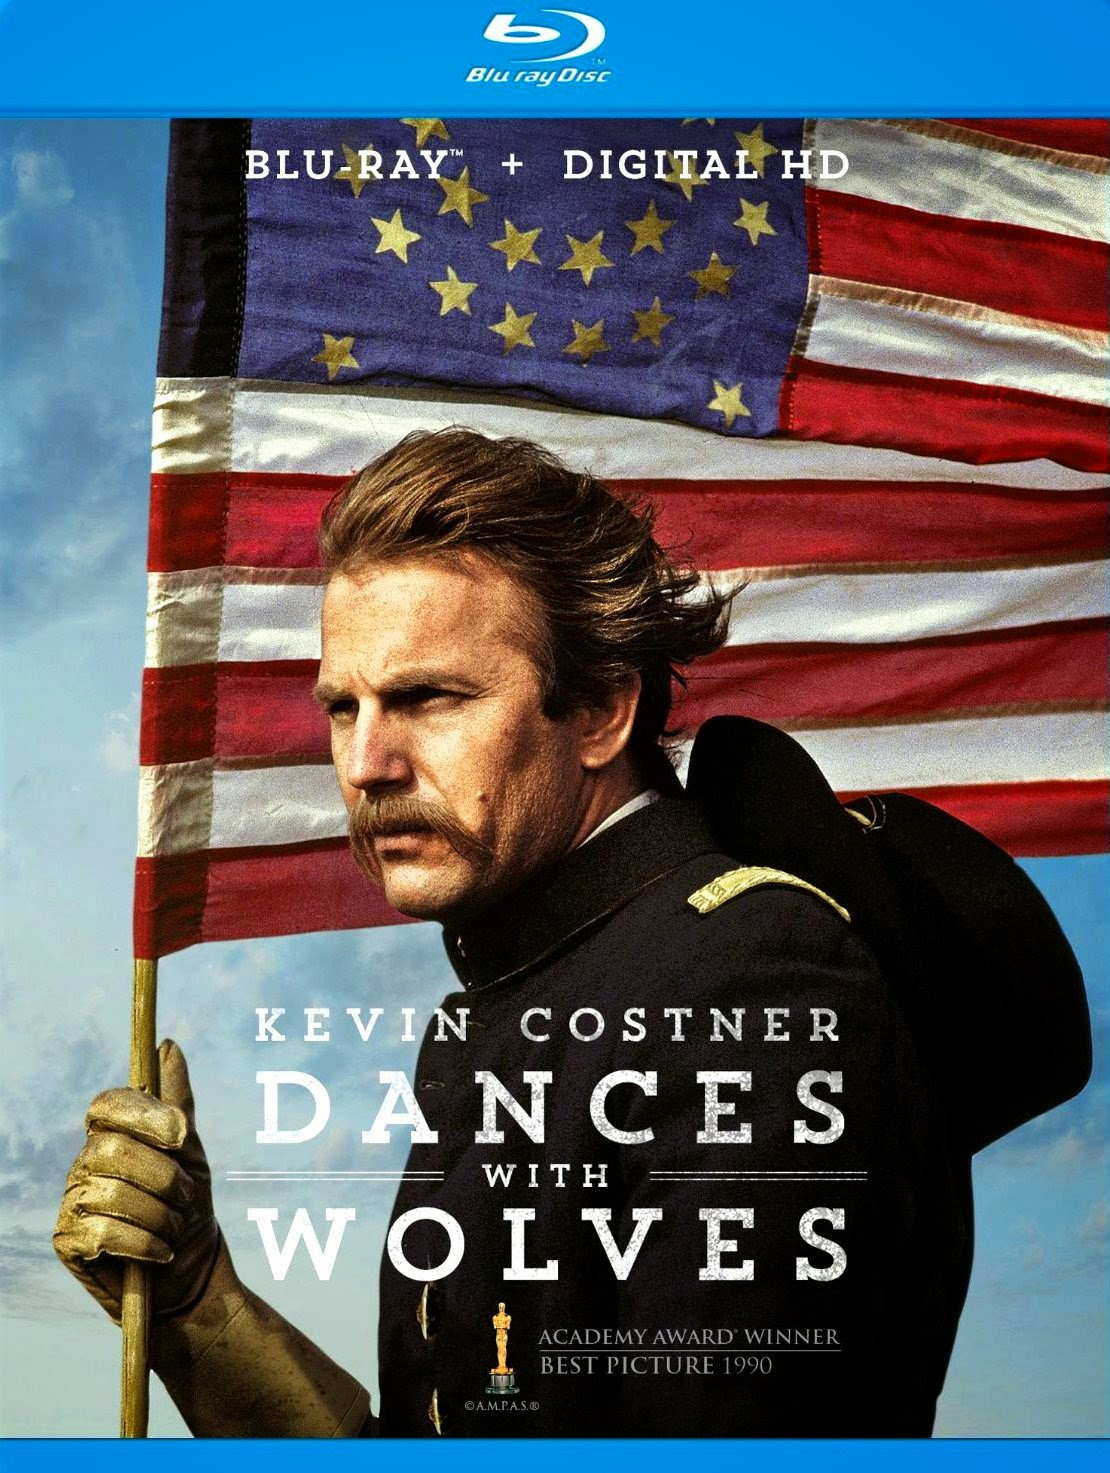 dances with wolves review essay on a movie